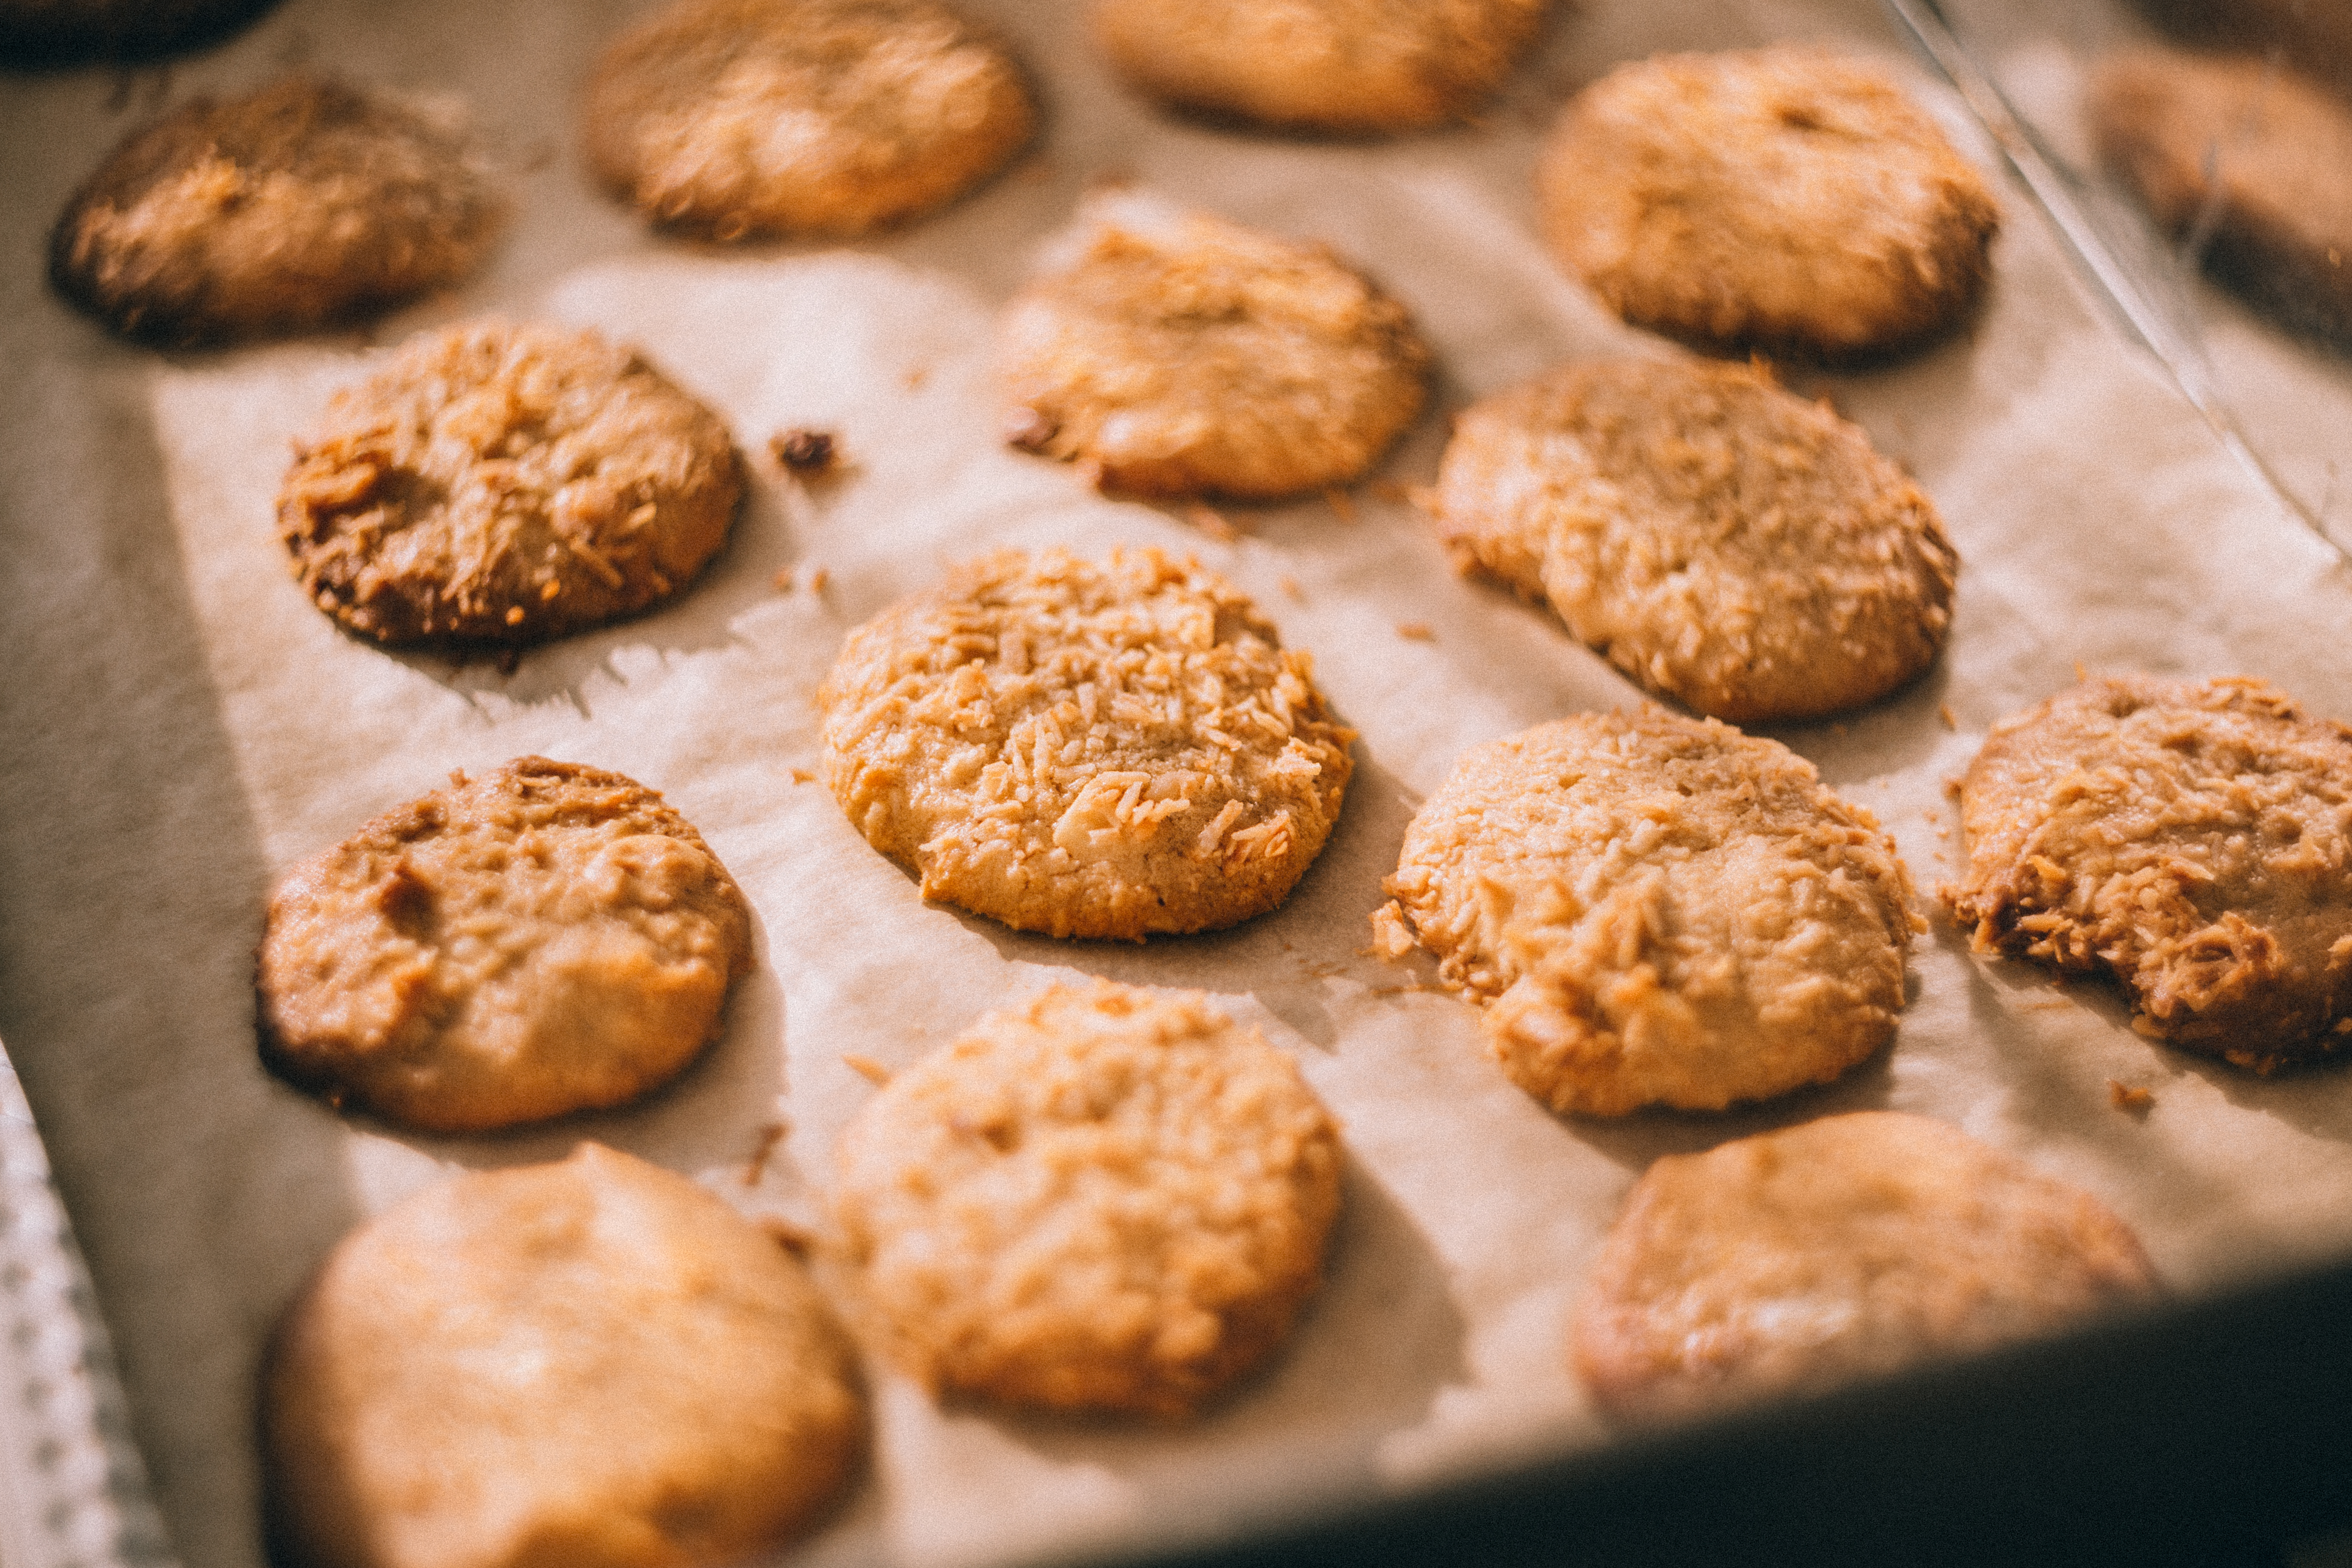 Cookies taste great baked in a Heritage Range Cooker